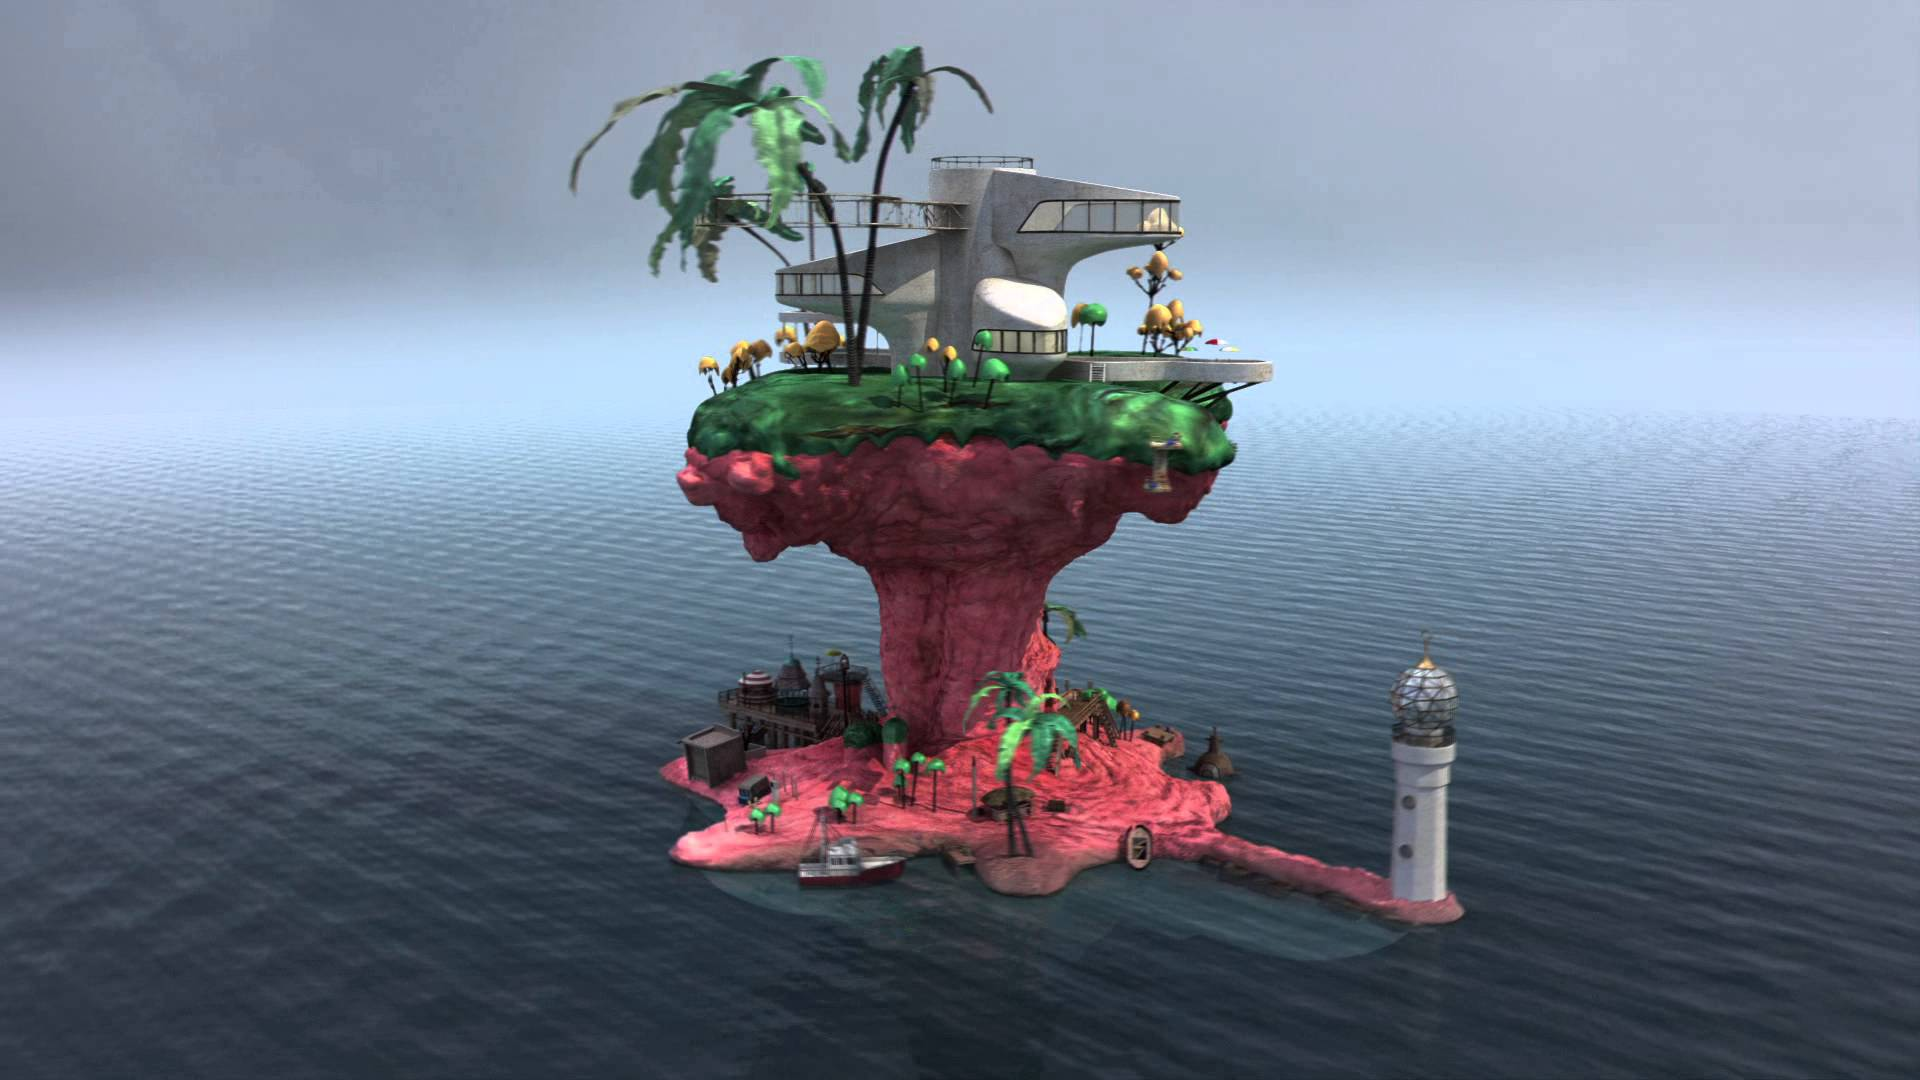 gorillaz wallpapers plastic beach - photo #34